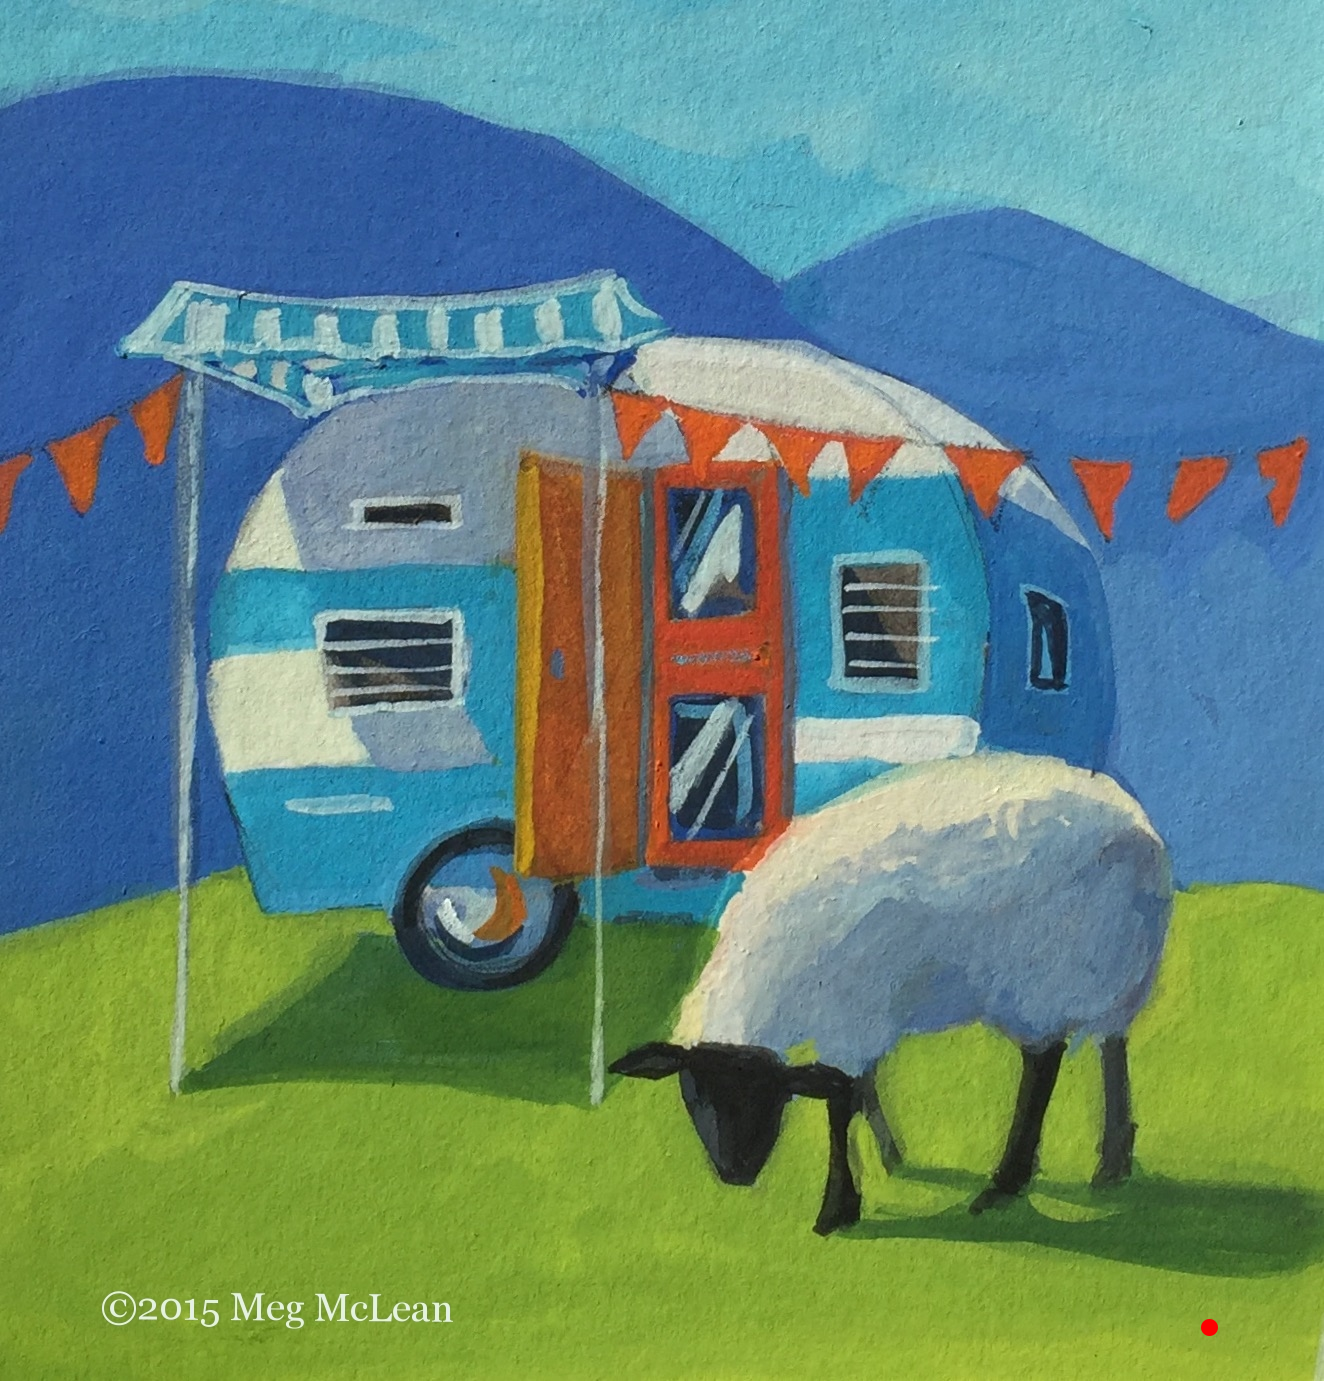 Meg McLean Camper Sheep